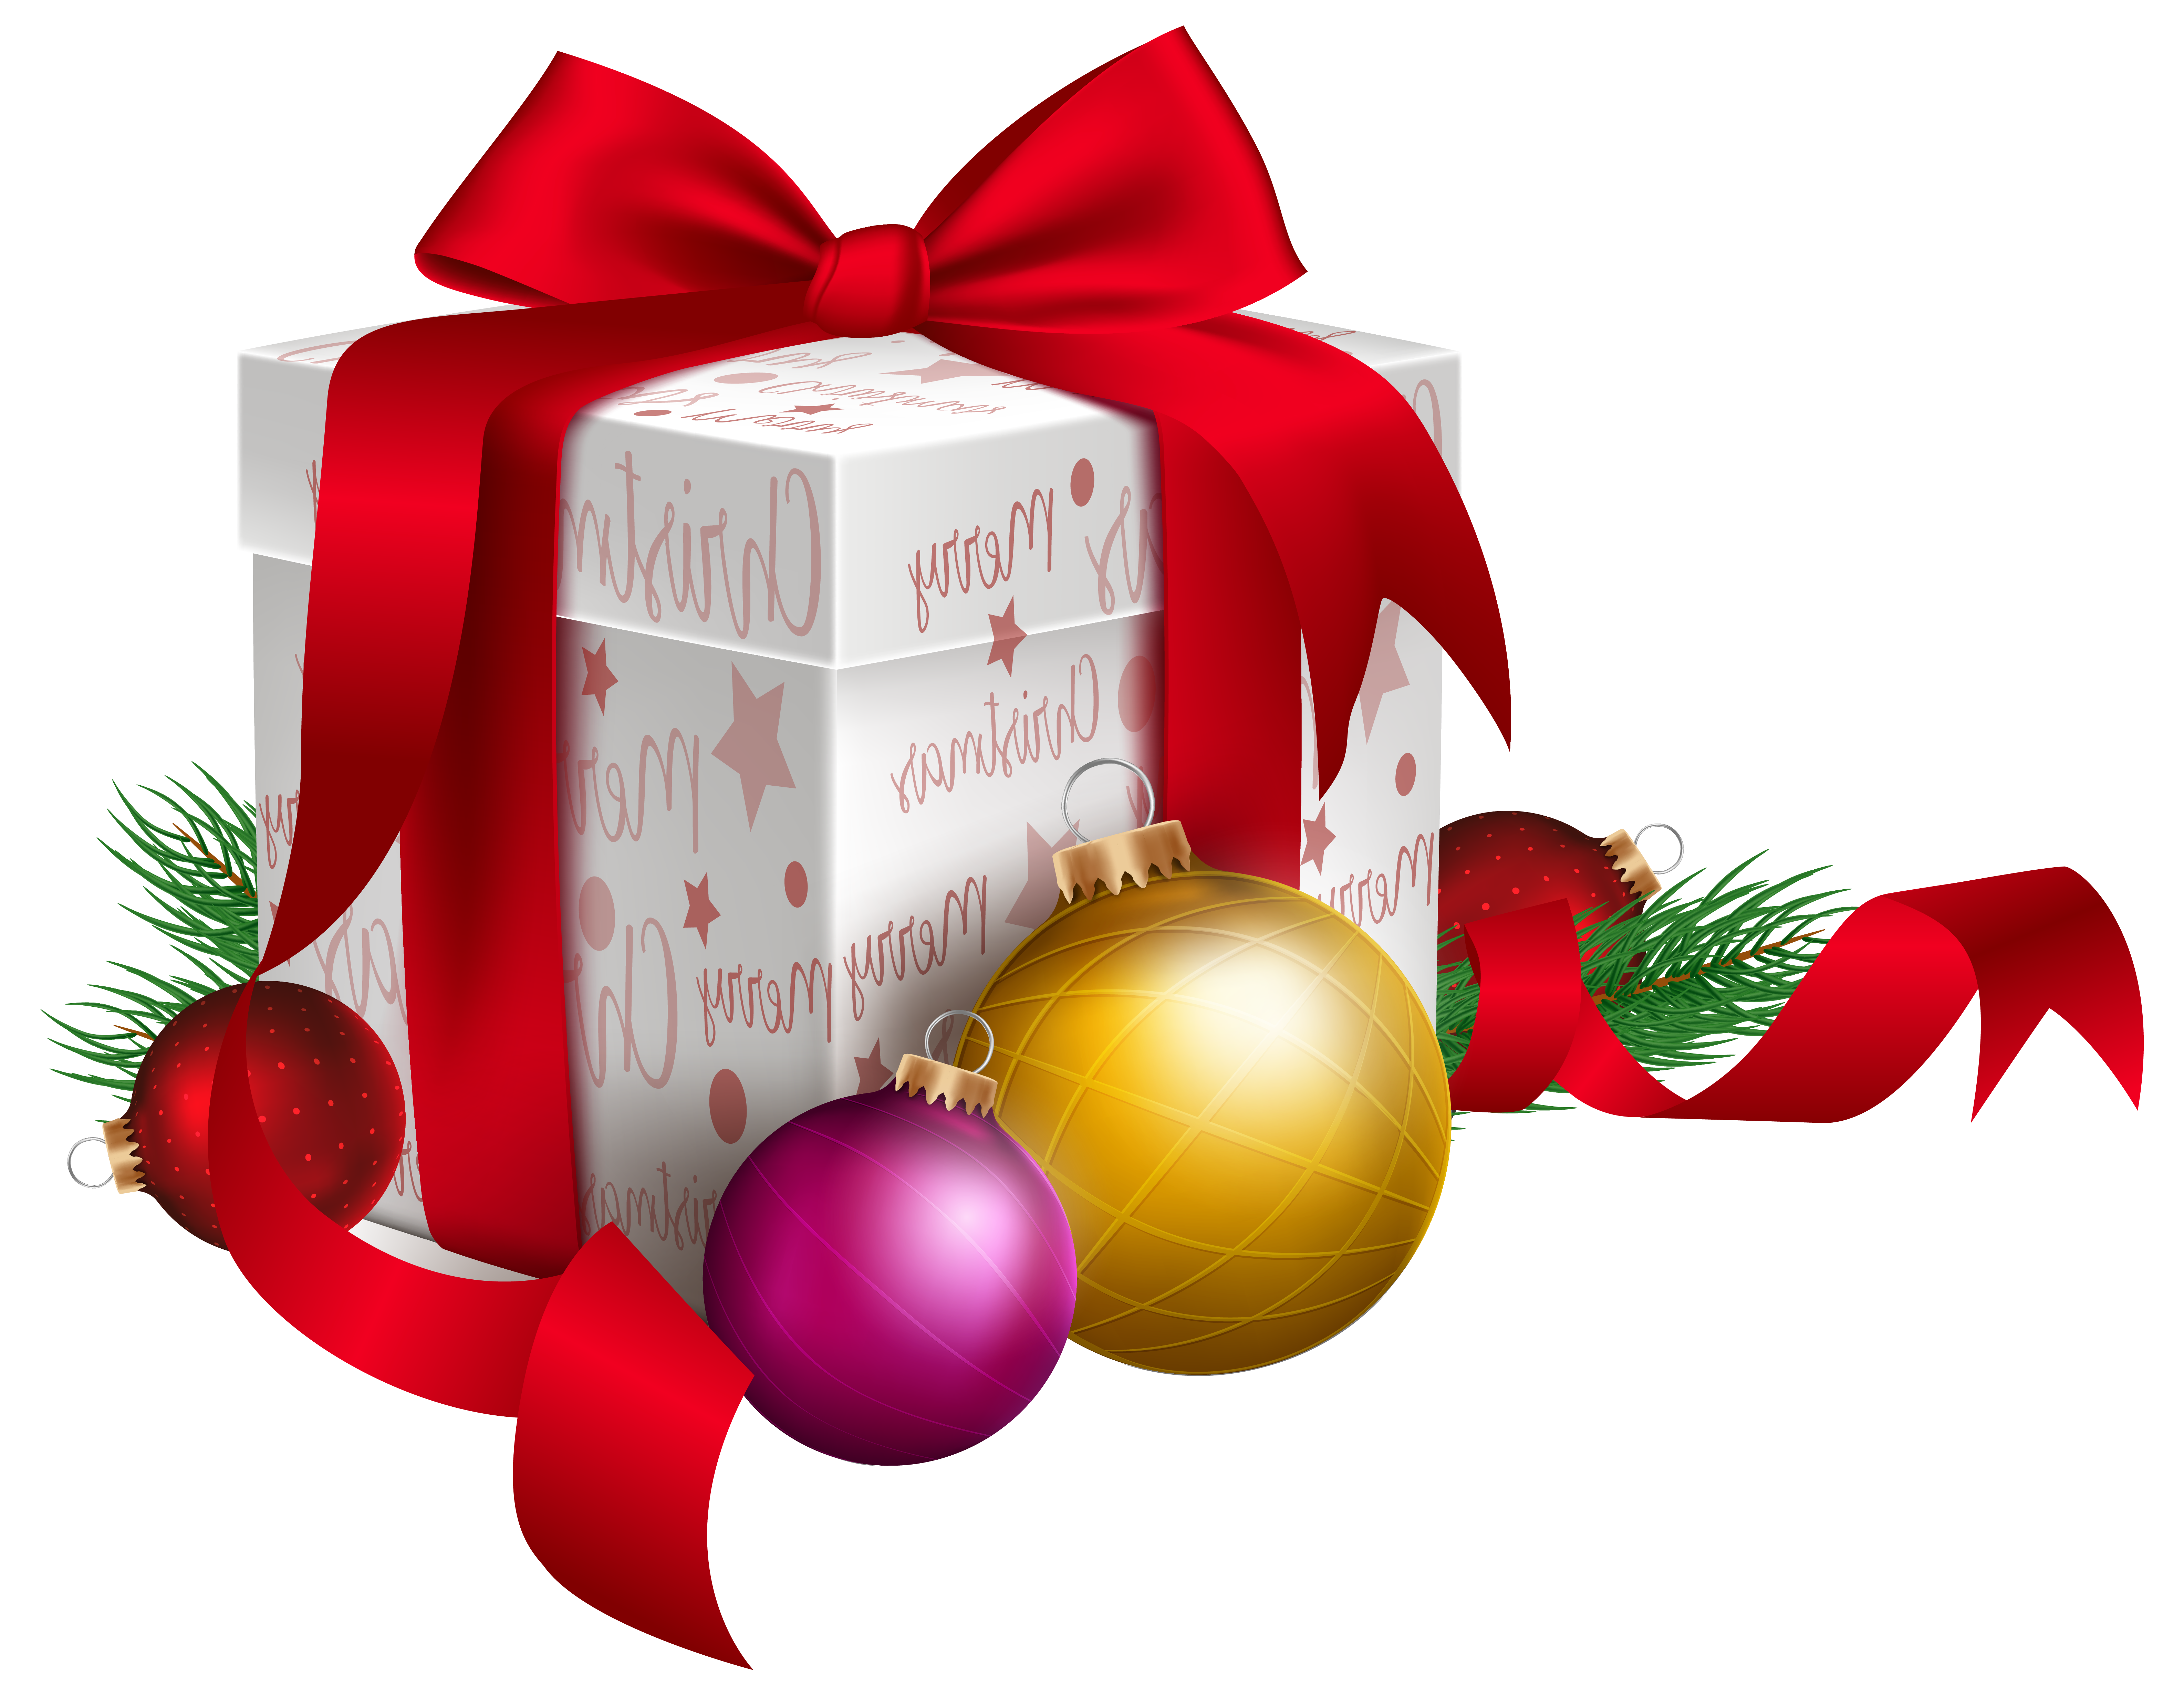 Png christmas images. Gift and ornaments transparent